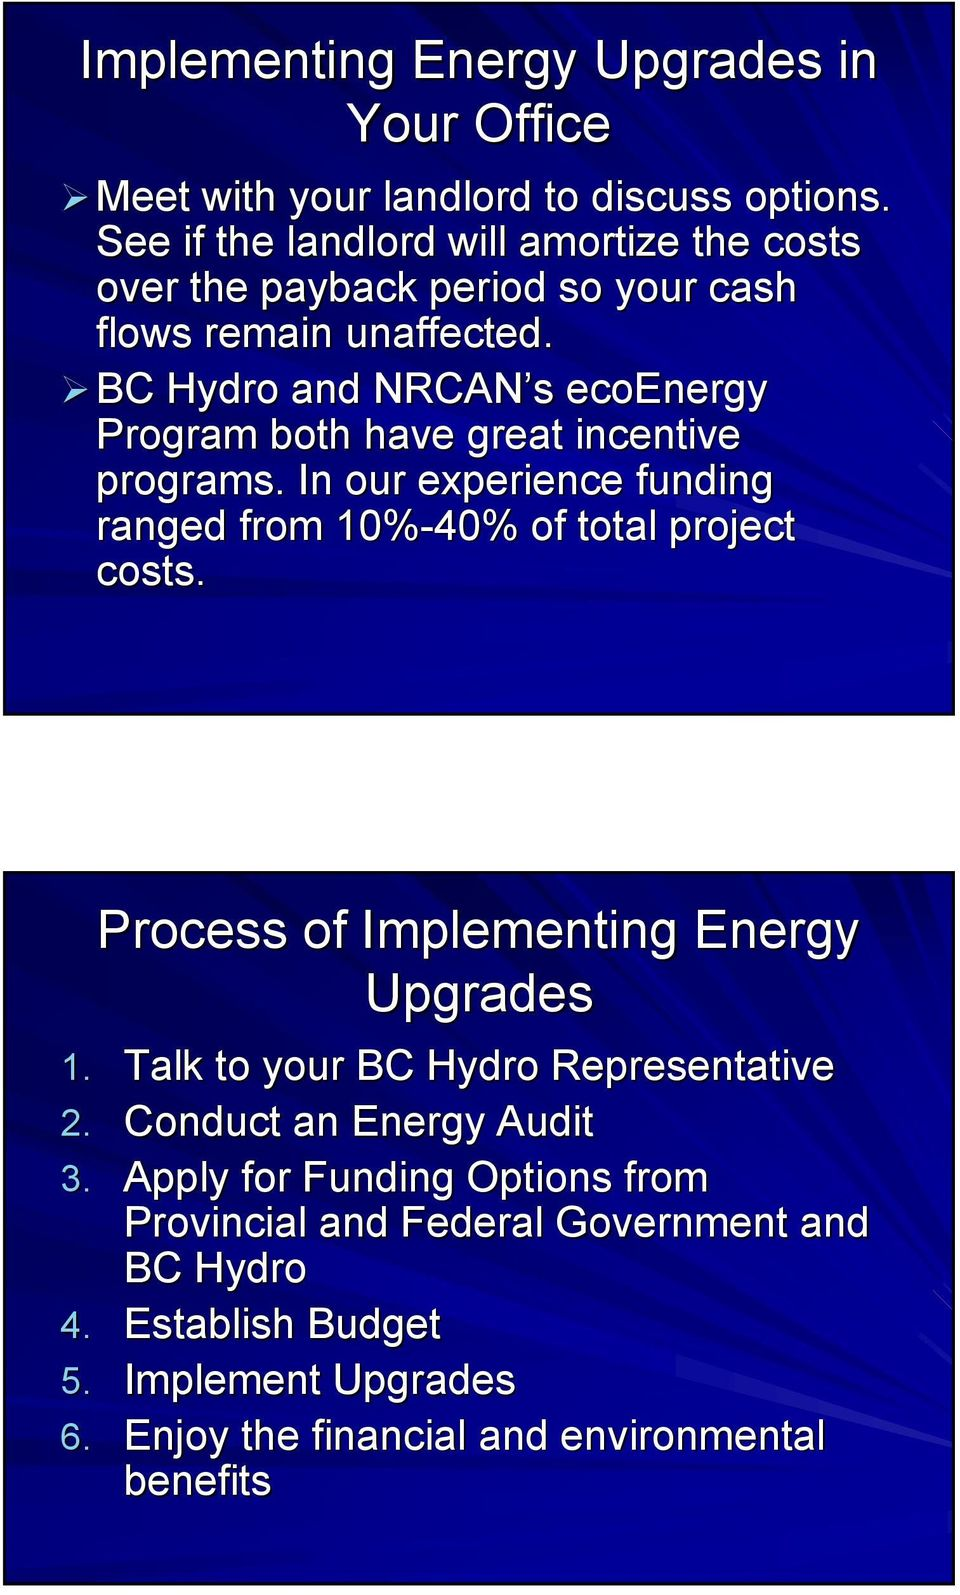 BC Hydro and NRCAN s ecoenergy Program both have great incentive programs. In our experience funding ranged from 10%-40% of total project costs.